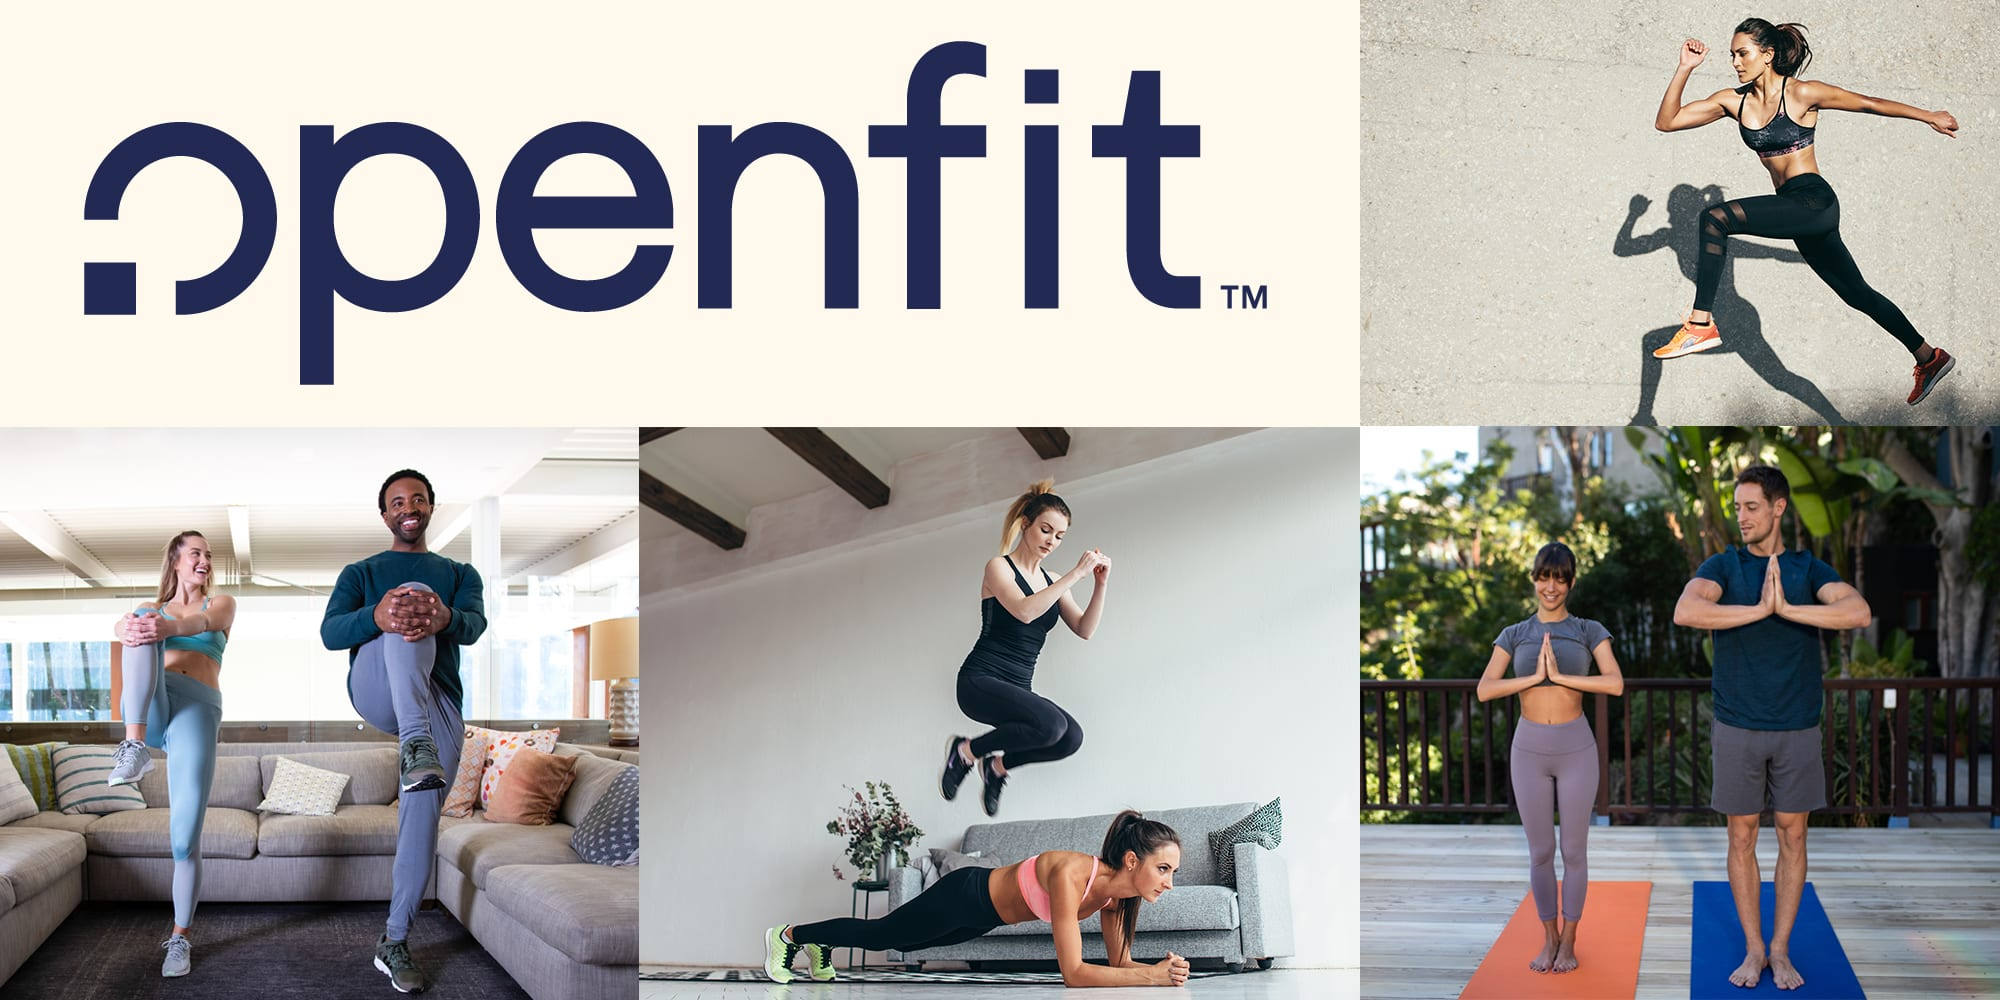 Openfit — The New Destination for Streaming Fitness, Health, and Wellness!